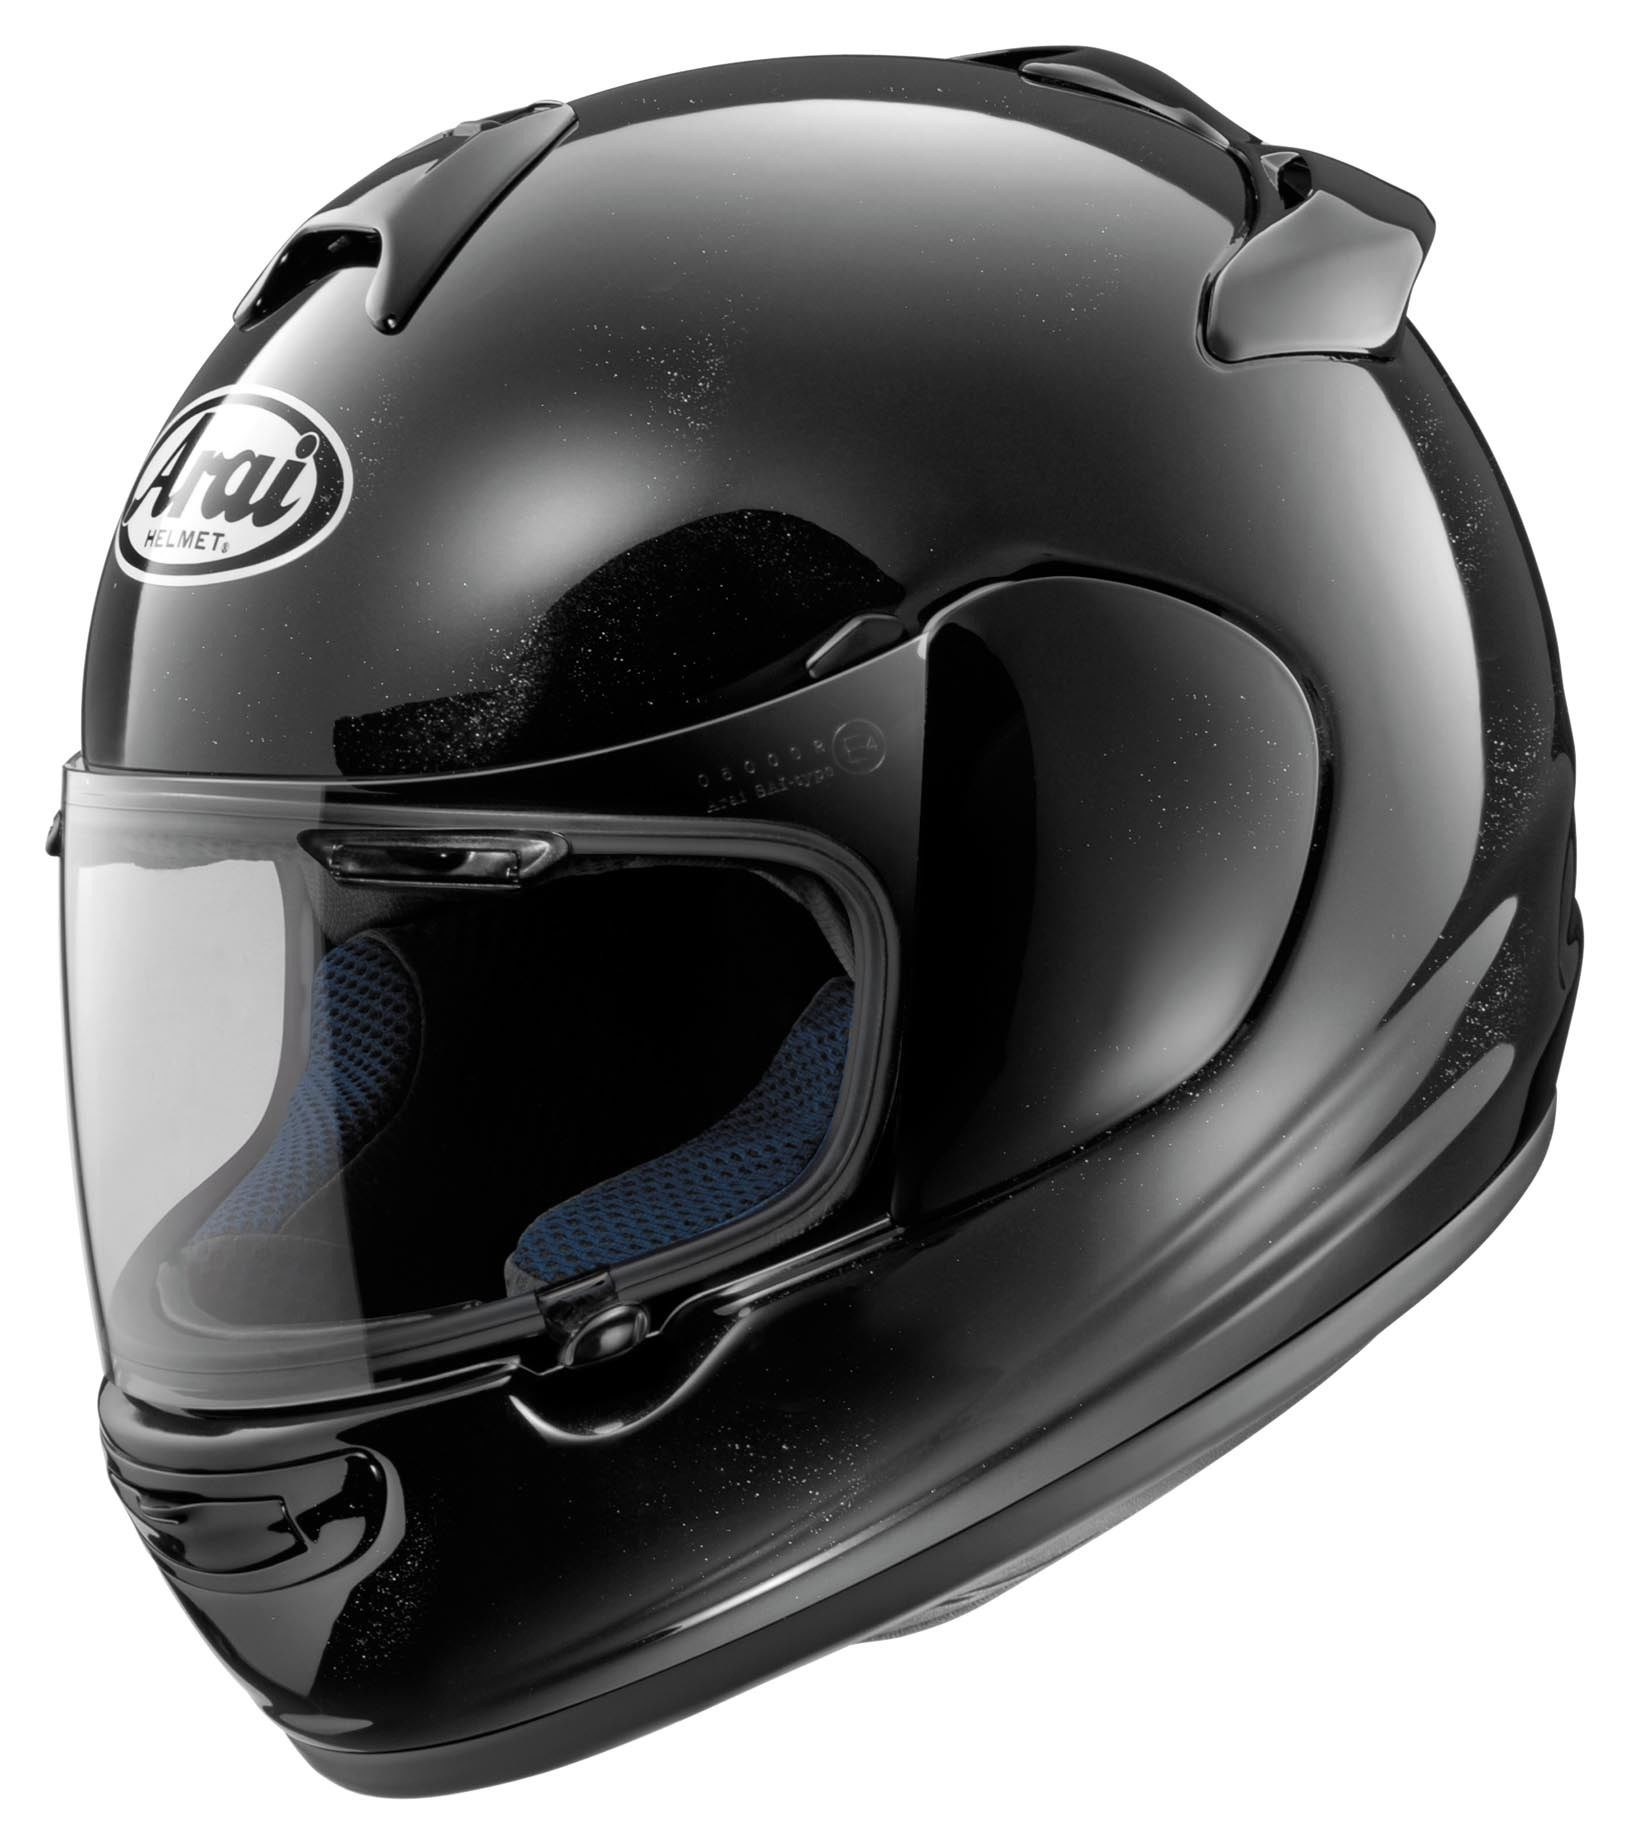 helmets arai helmet motorcycle vector revzilla solid gear cycle face medium coolest pricing risky head guide ship phil read